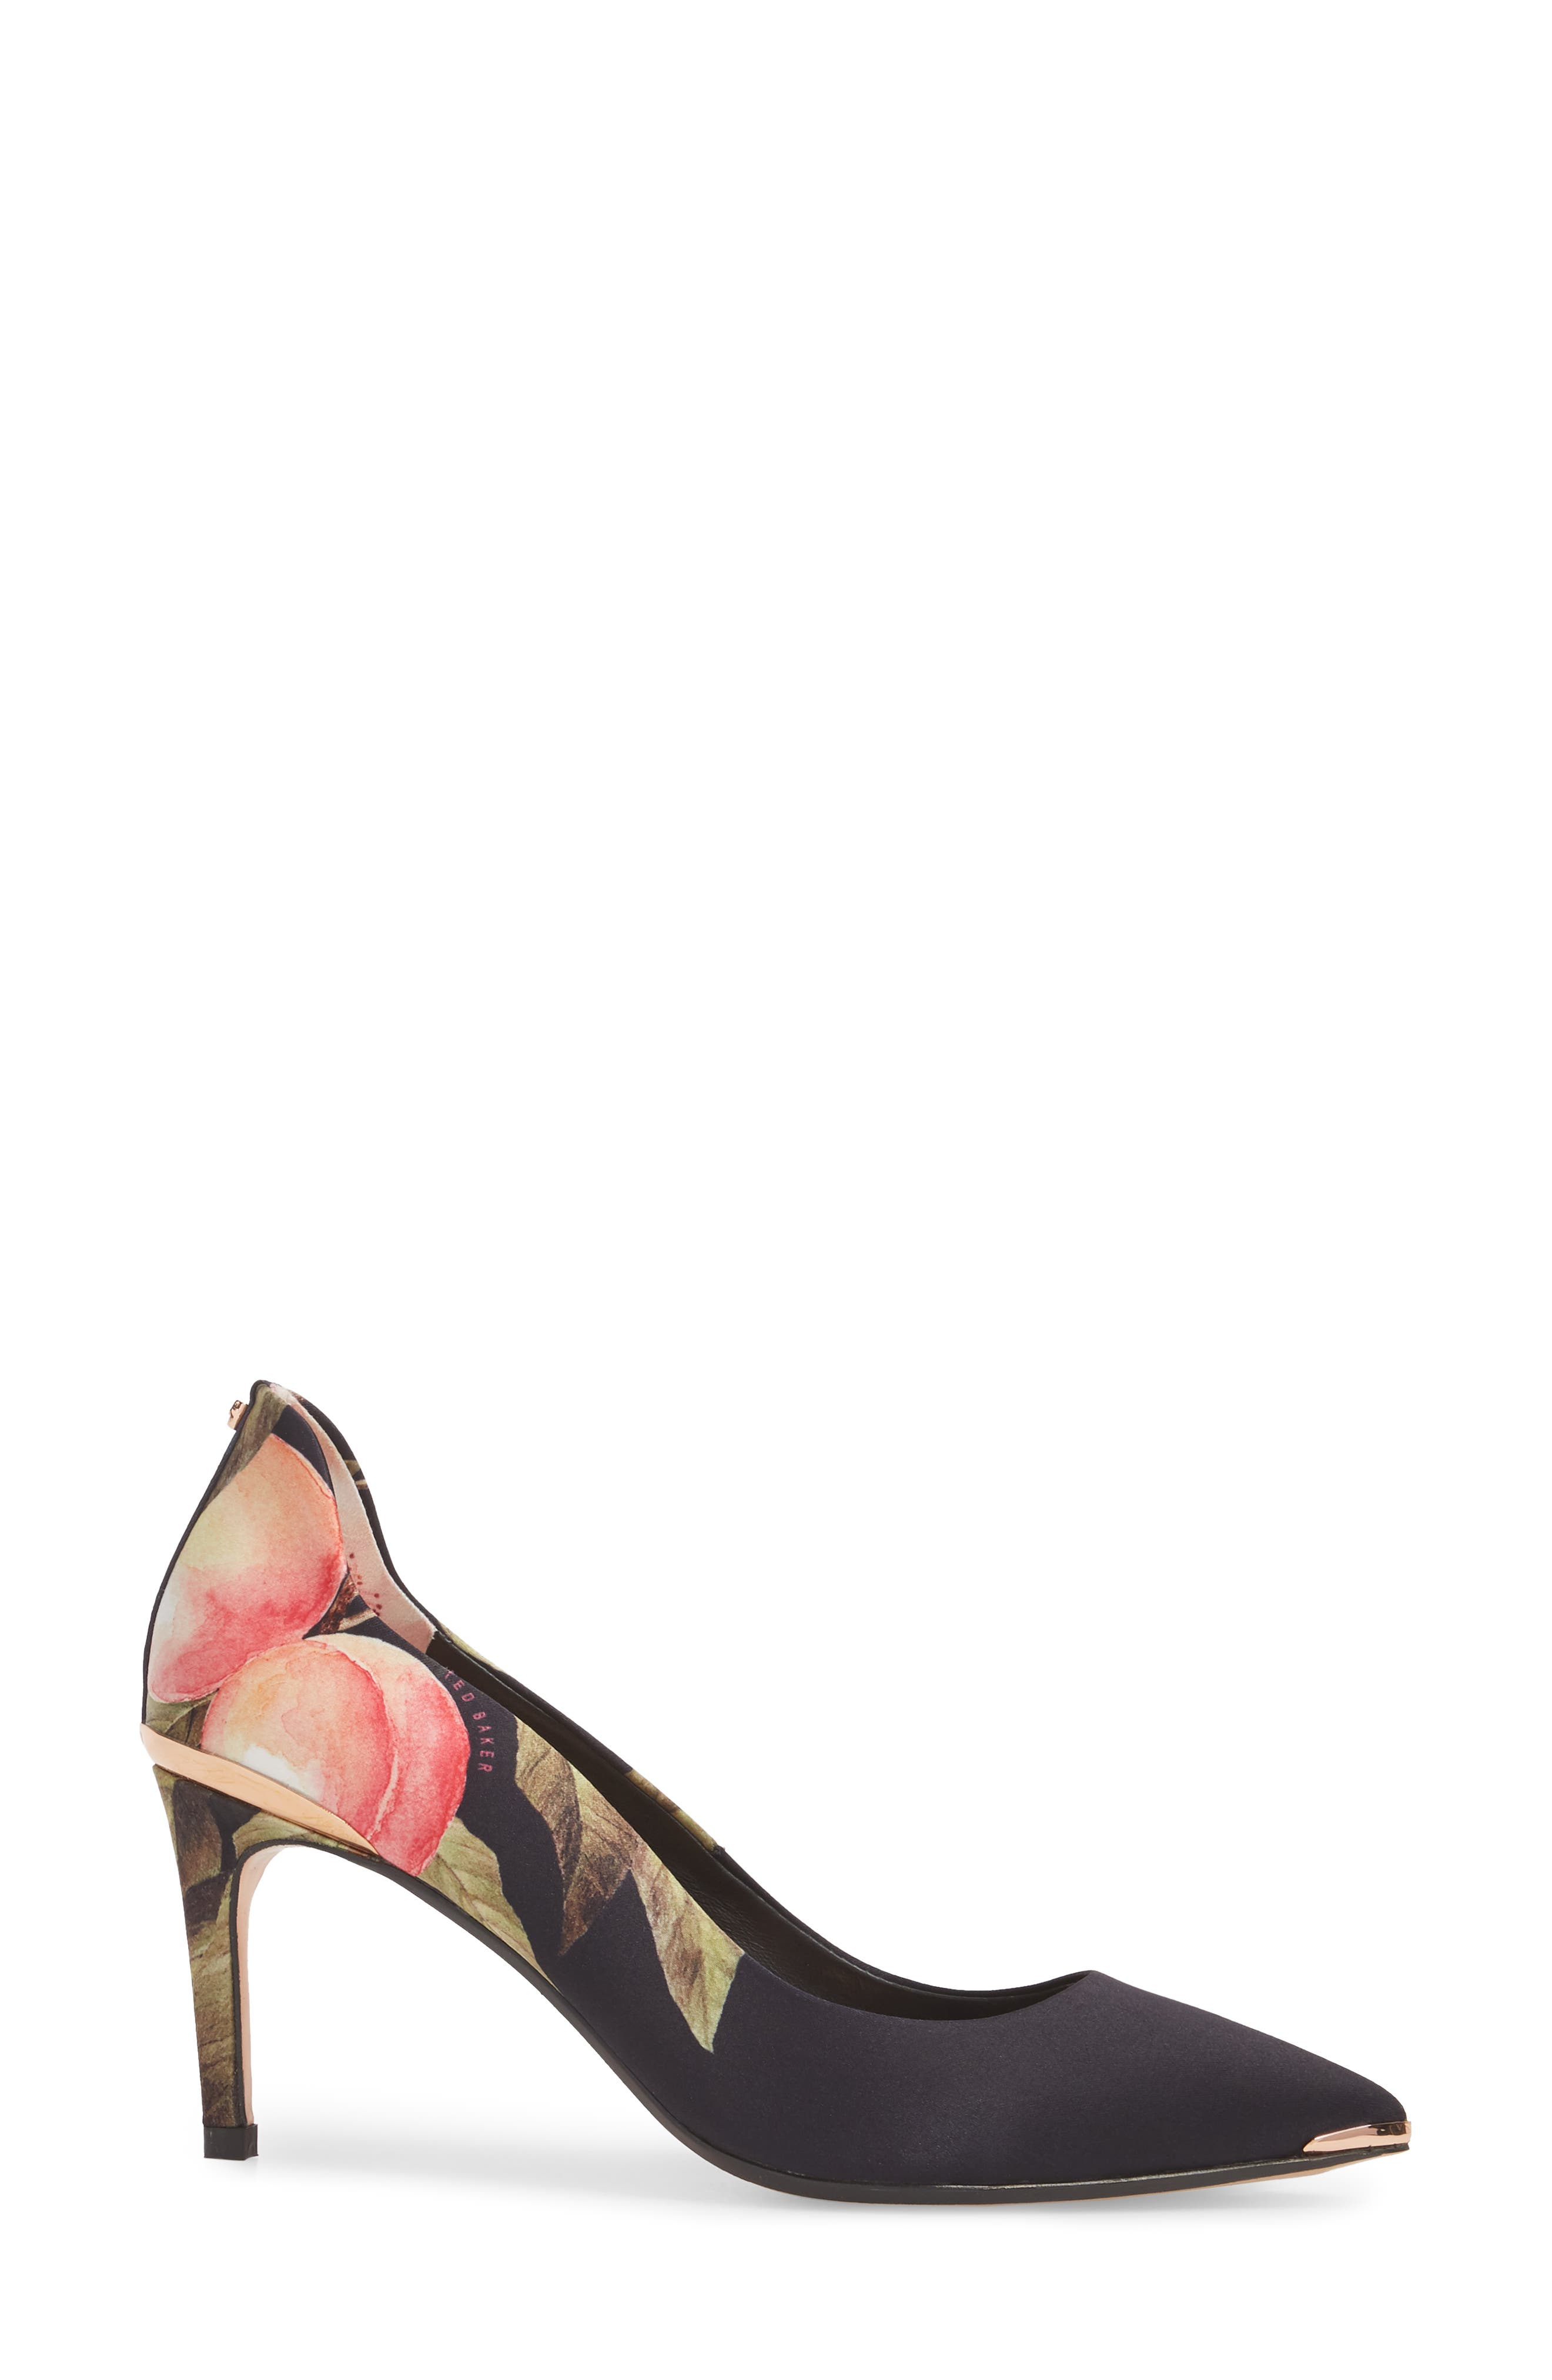 TED BAKER LONDON,                             Pointy Toe Pump,                             Alternate thumbnail 3, color,                             001